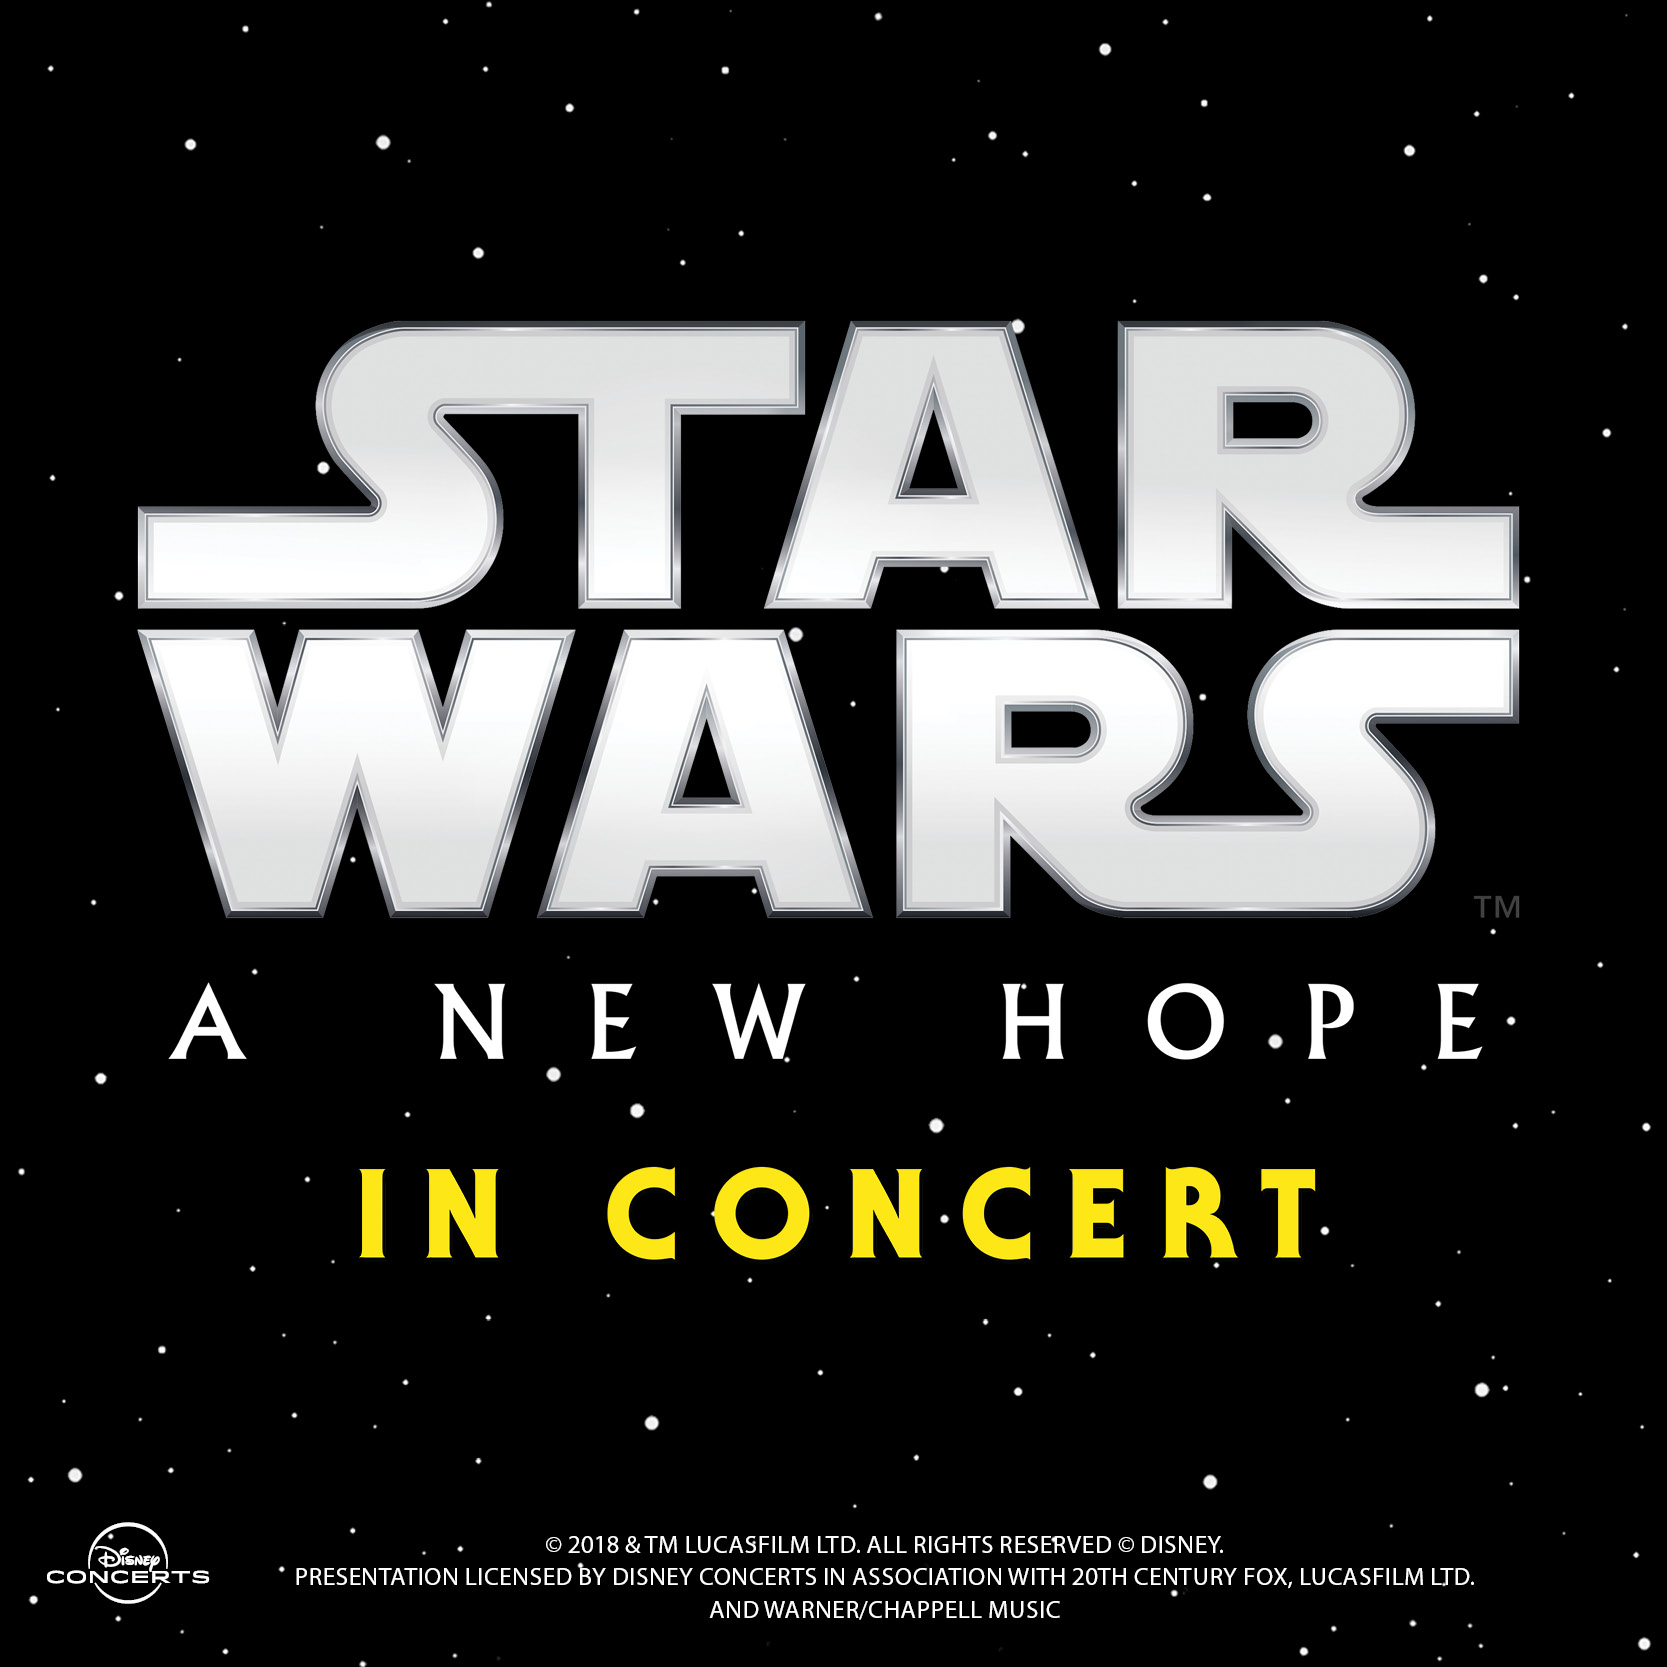 STAR WARS: FILM CONCERT SERIES - A New Hope